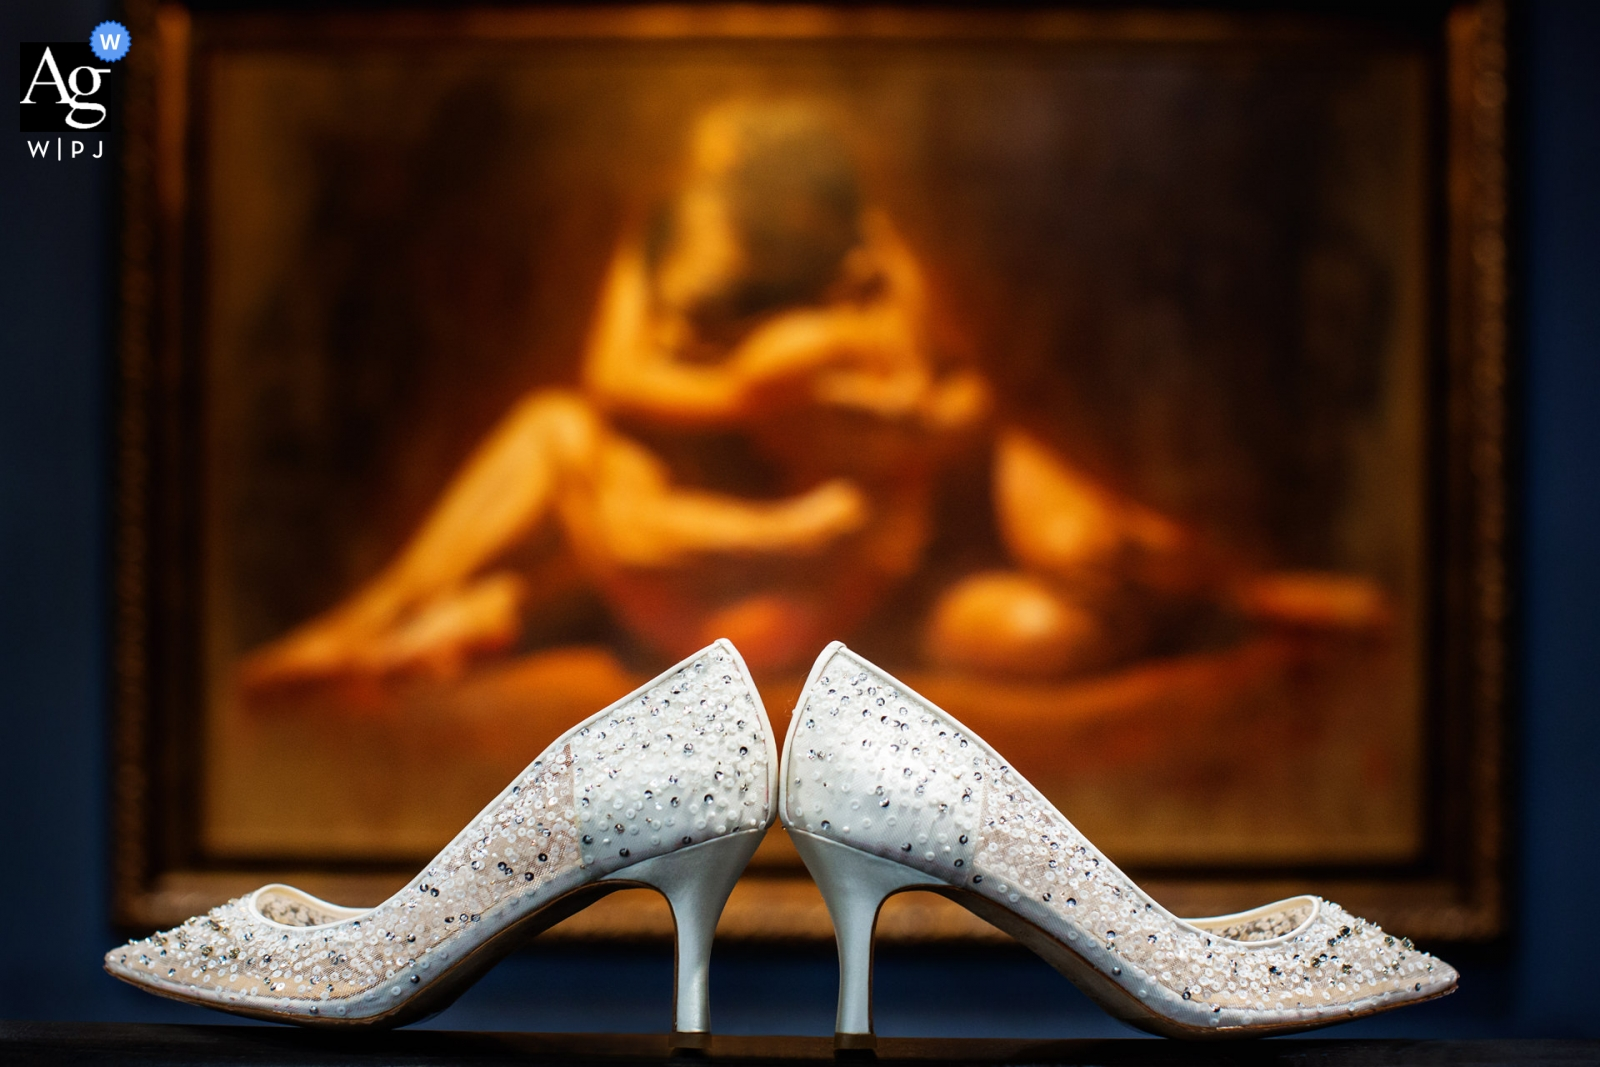 Ryland Inn New Jersey Wedding photographer | the brides shoes symmetrically placed before a painting